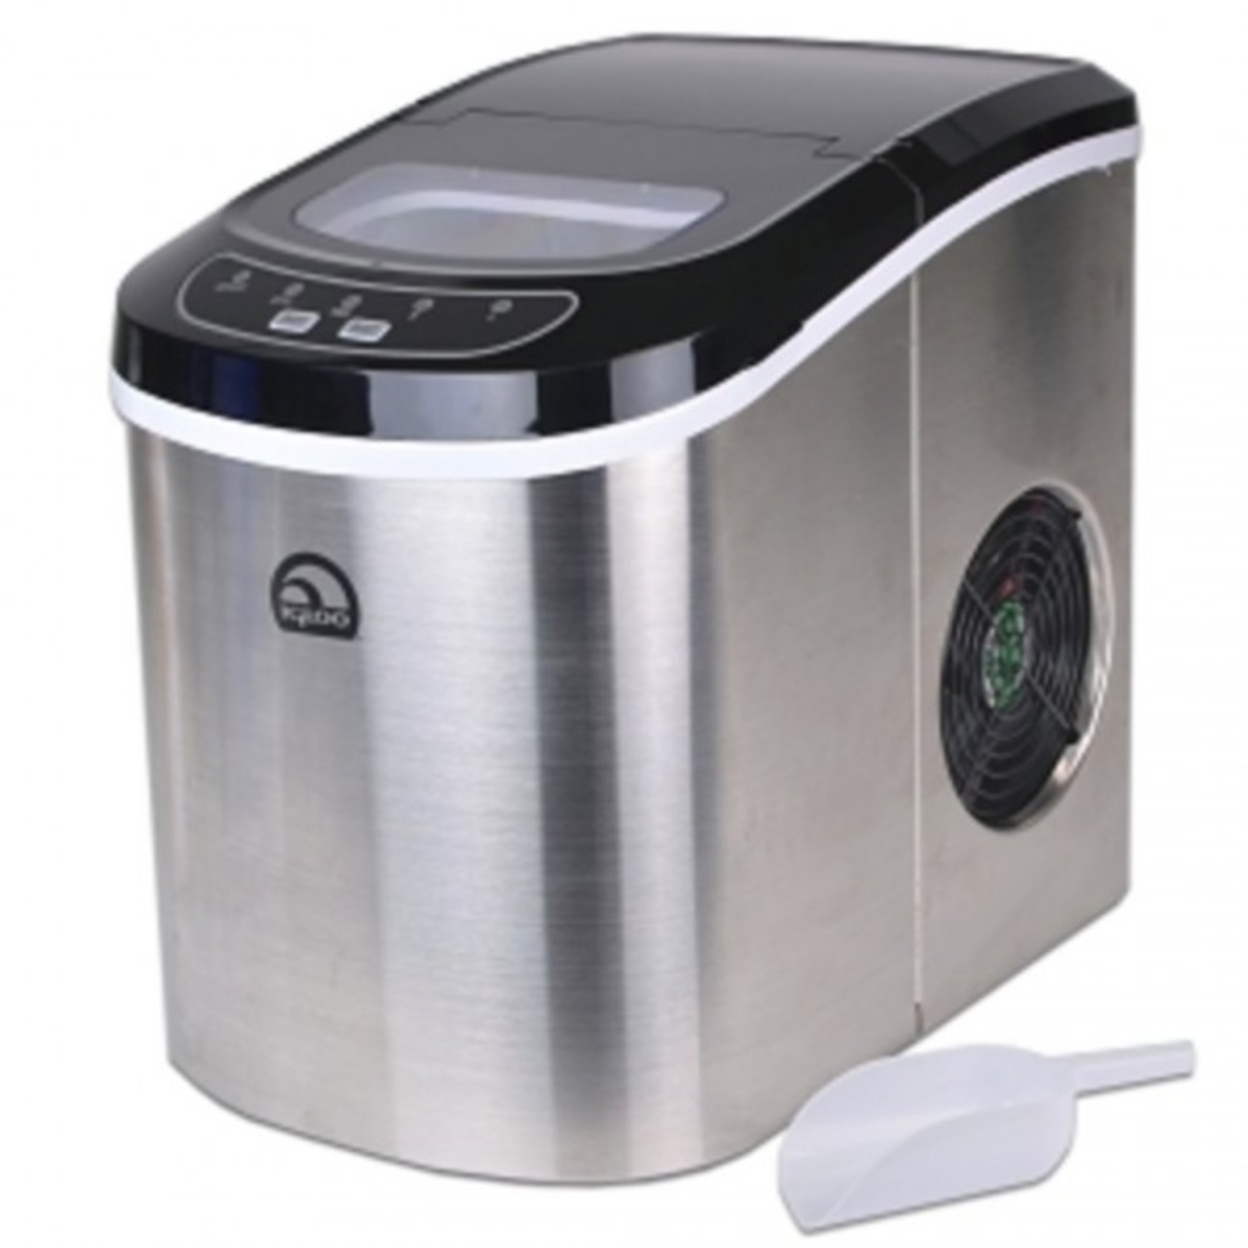 Reviews On Igloo Countertop Ice Maker : ice maker target igloo ice105 portable countertop ice maker stainless